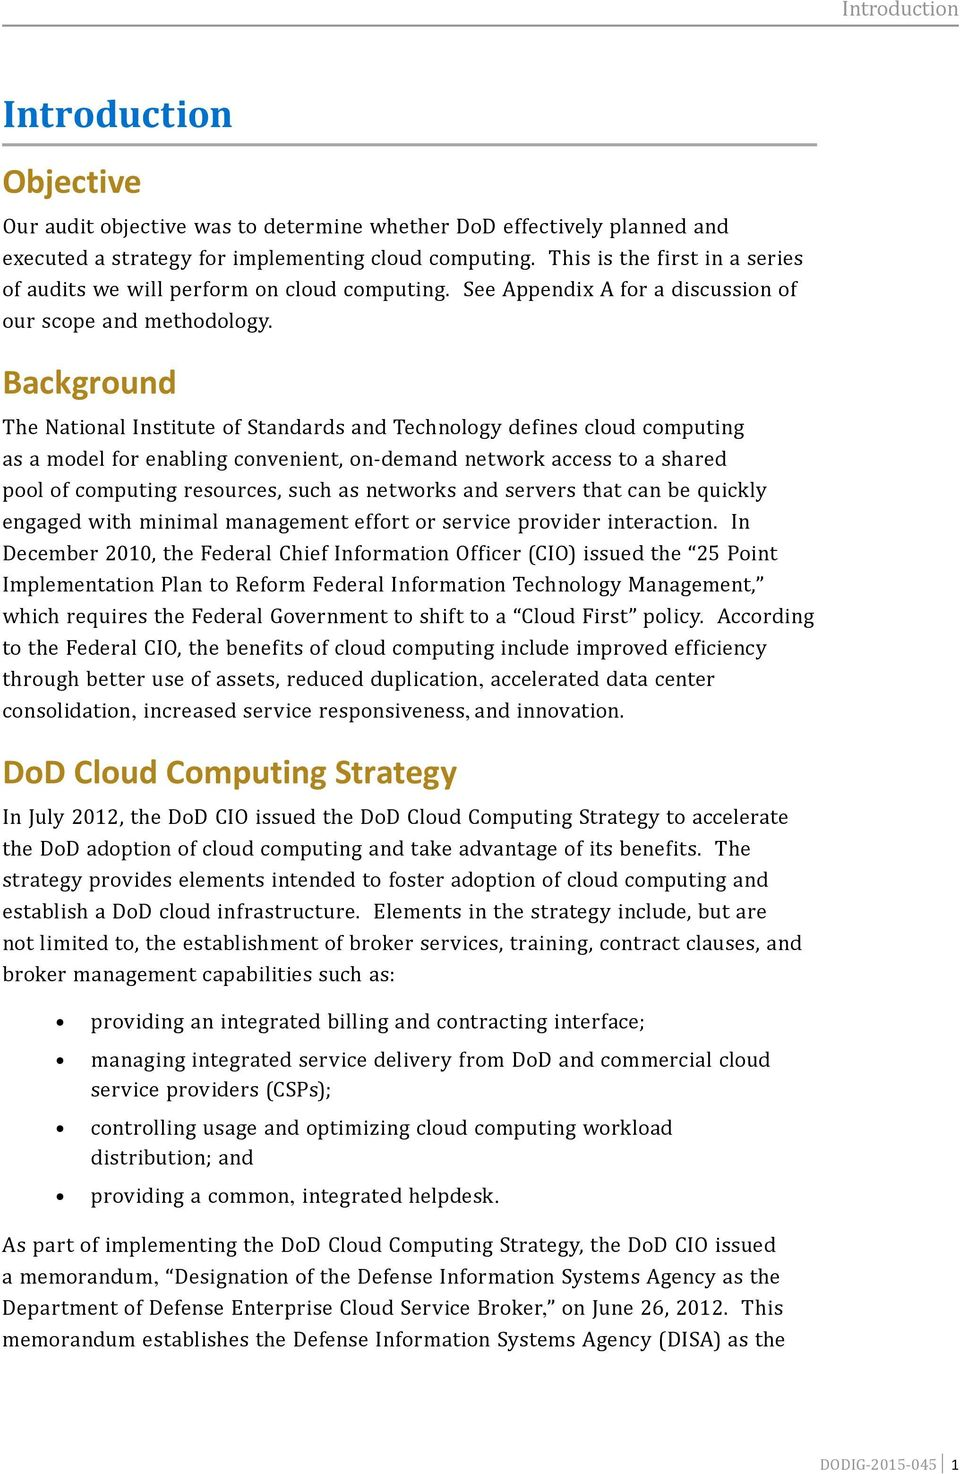 Background The National Institute of Standards and Technology defines cloud computing as a model for enabling convenient, on demand network access to a shared pool of computing resources, such as